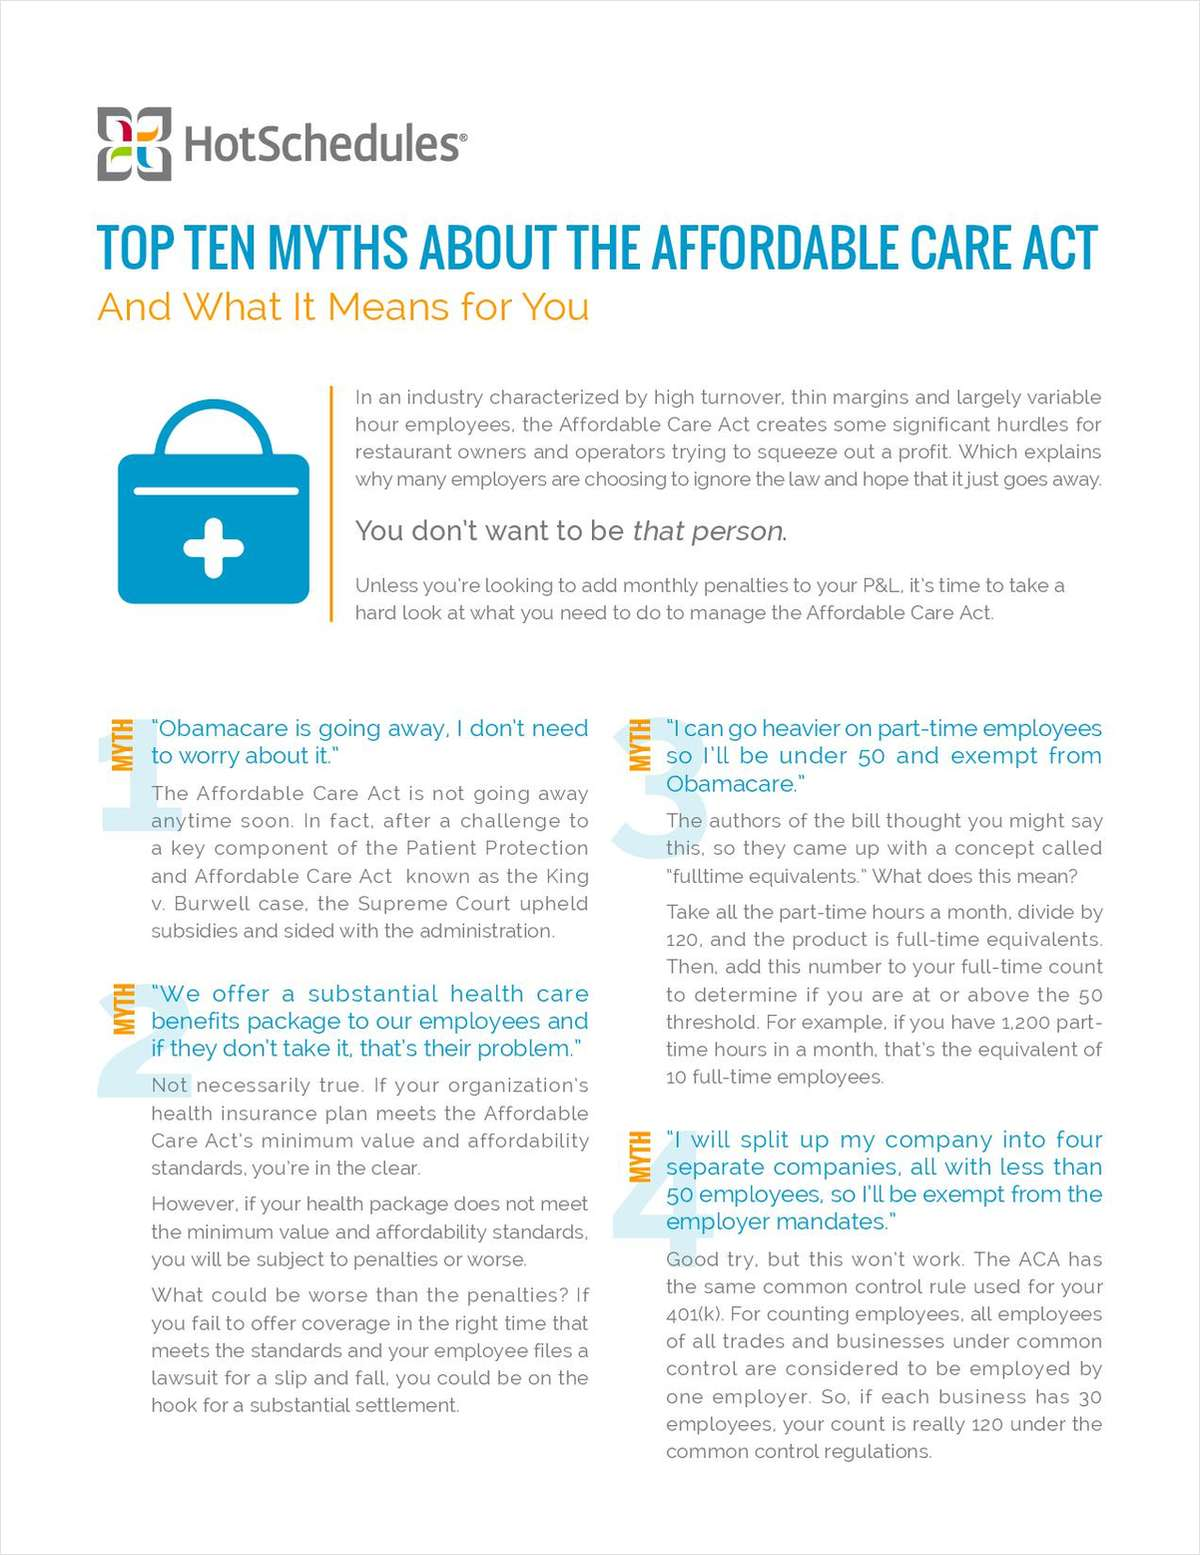 Top Ten Myths About the Affordable Care Act